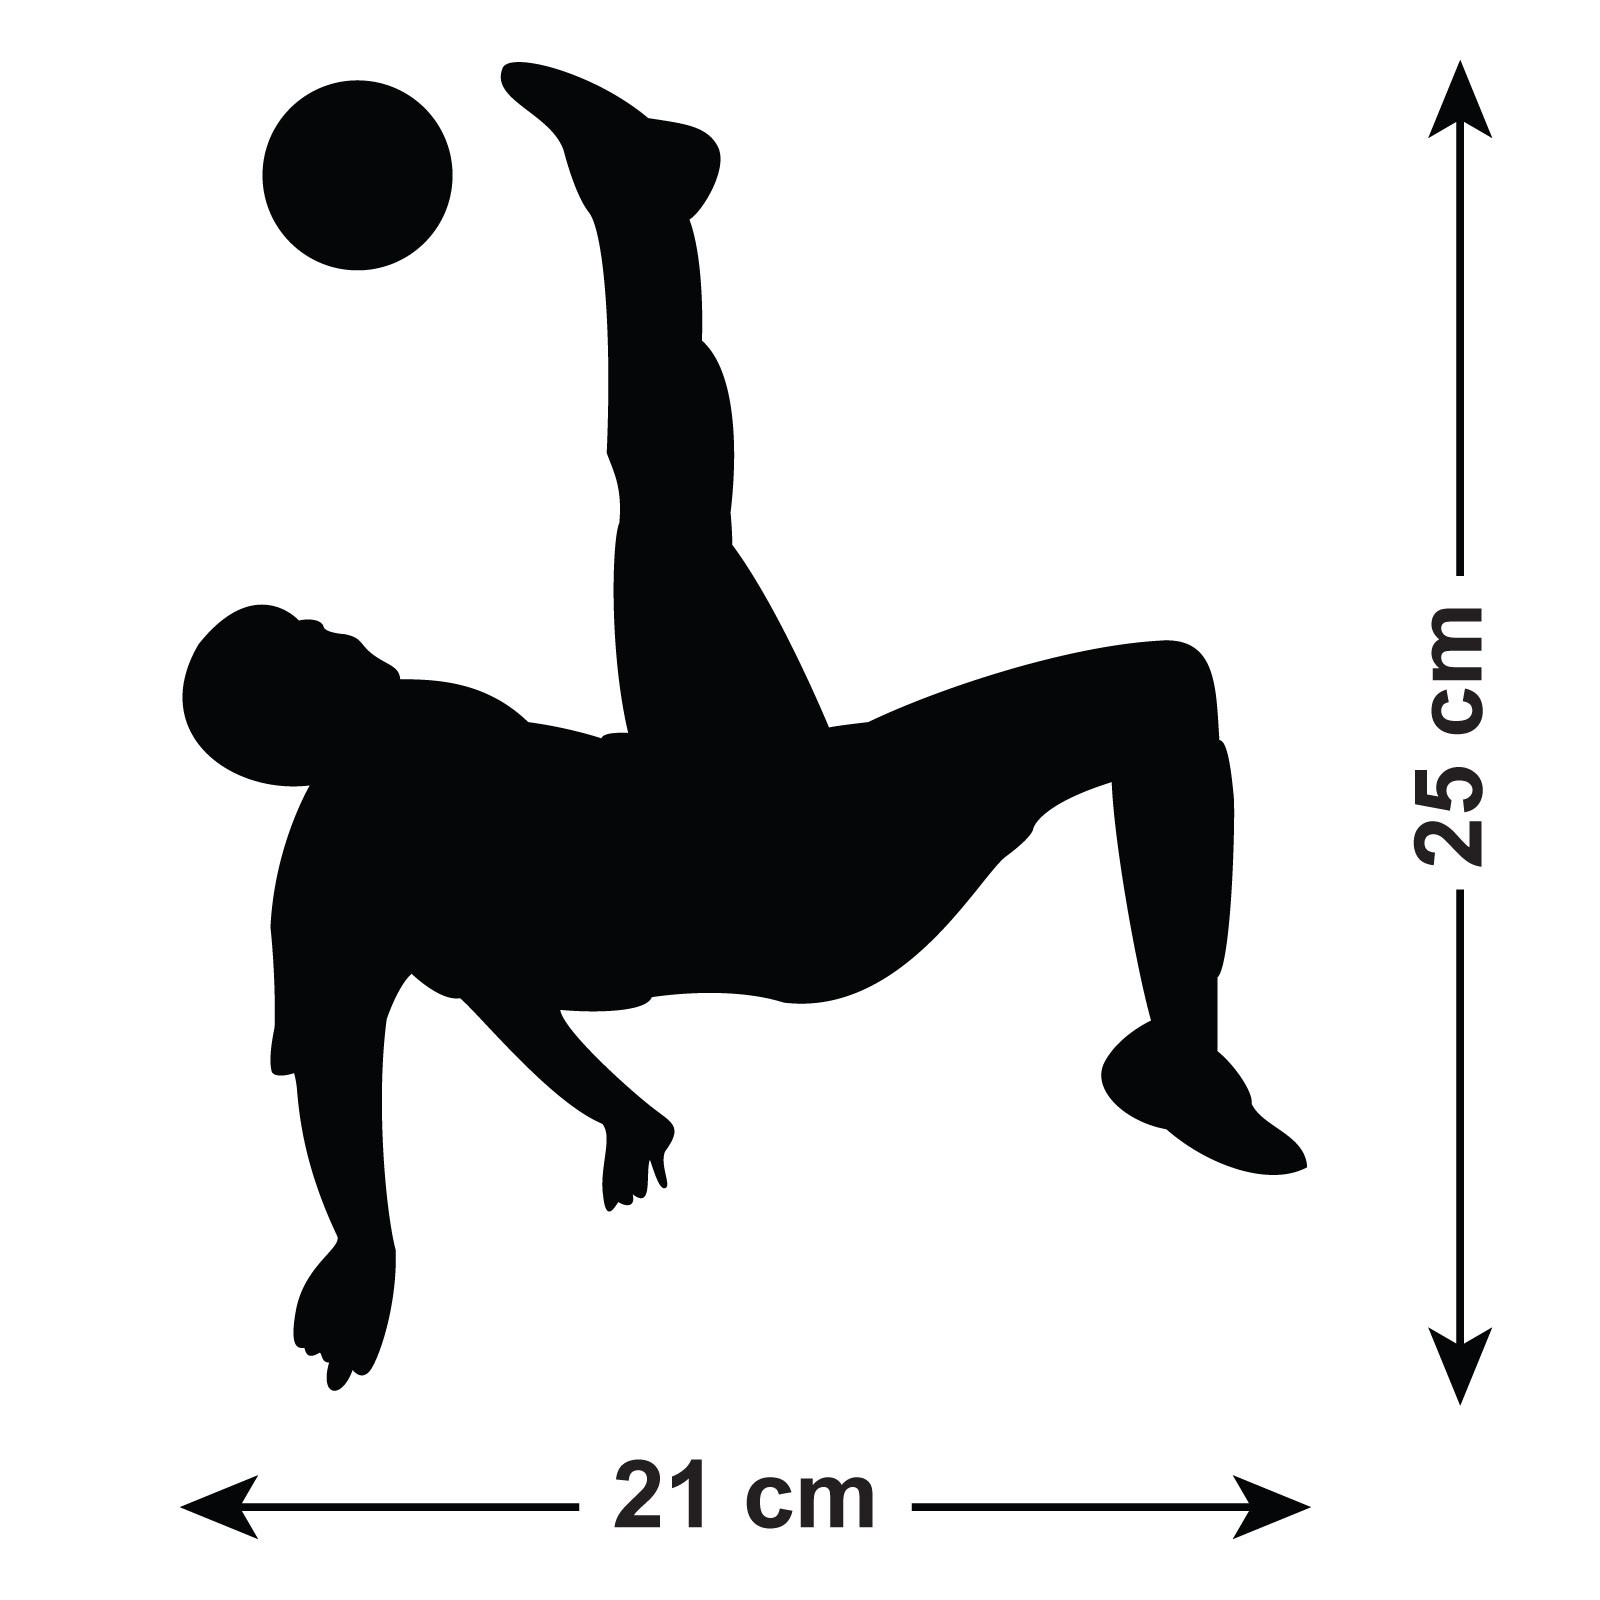 1600x1600 Footballer Silhouette Png Transparent Clip Art Image Gallery